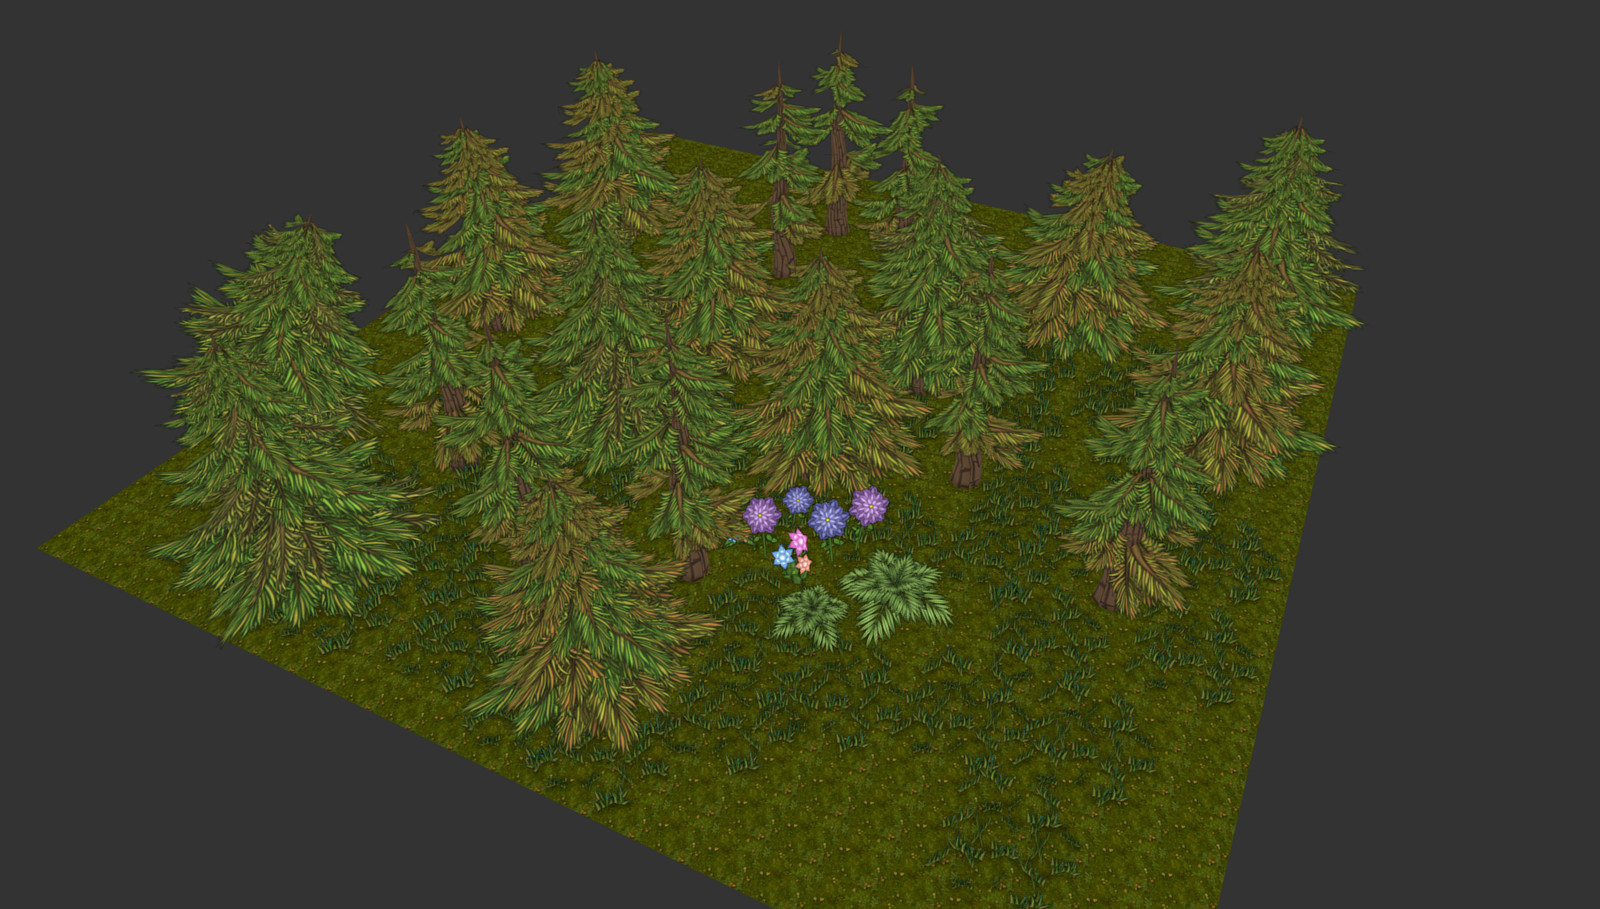 3rd pass on trees, also 3 variations now.